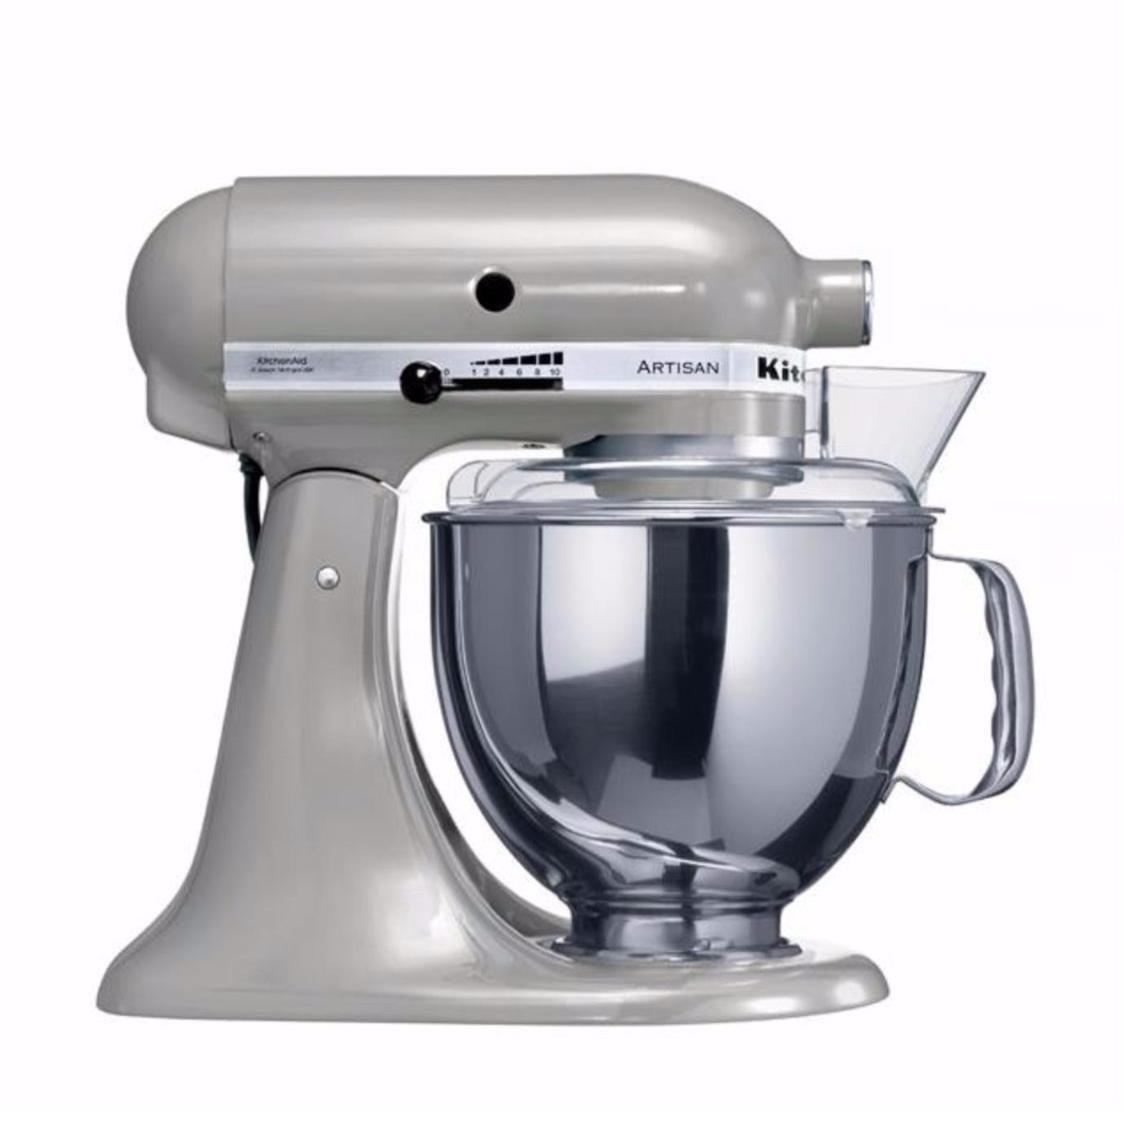 KitchenAid Artisan Series Tilt-Head Stand Mixer 5KSM150PSBMC